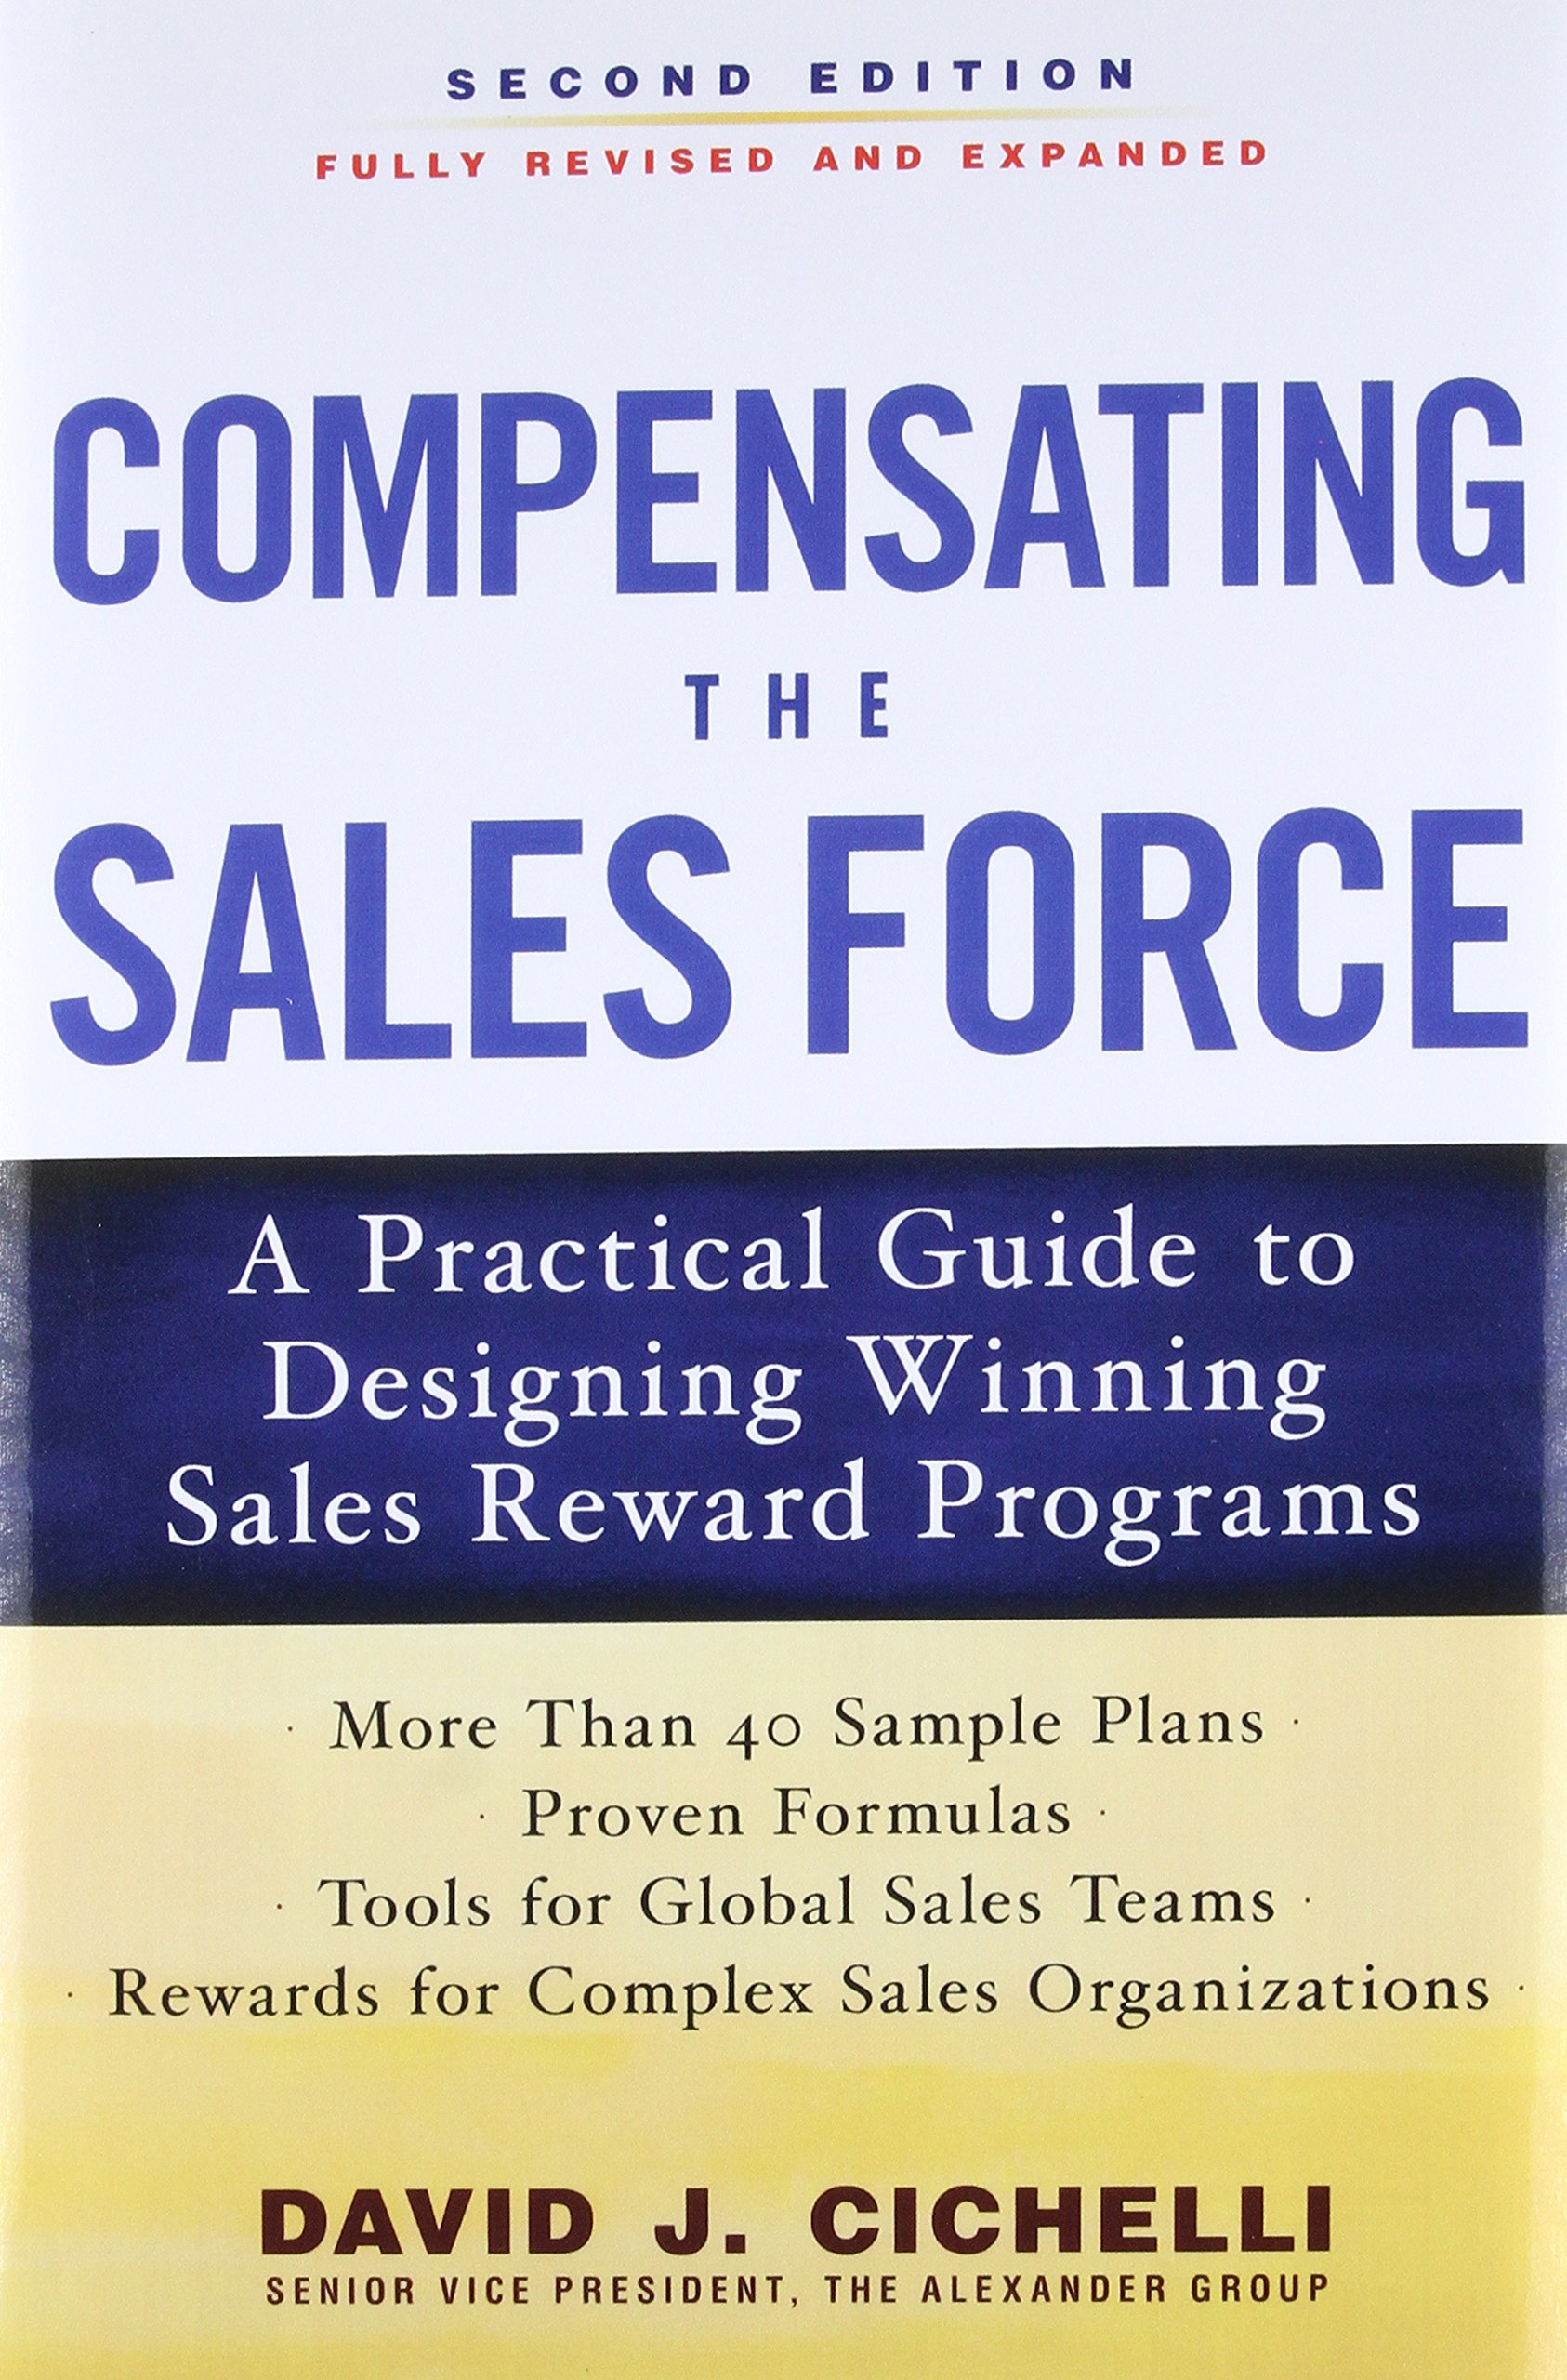 Compensating the Sales Force: A Practical Guide to Designing Winning Sales  Reward Programs, Second Edition: David J. Cichelli: 9780071739023:  Amazon.com: ...